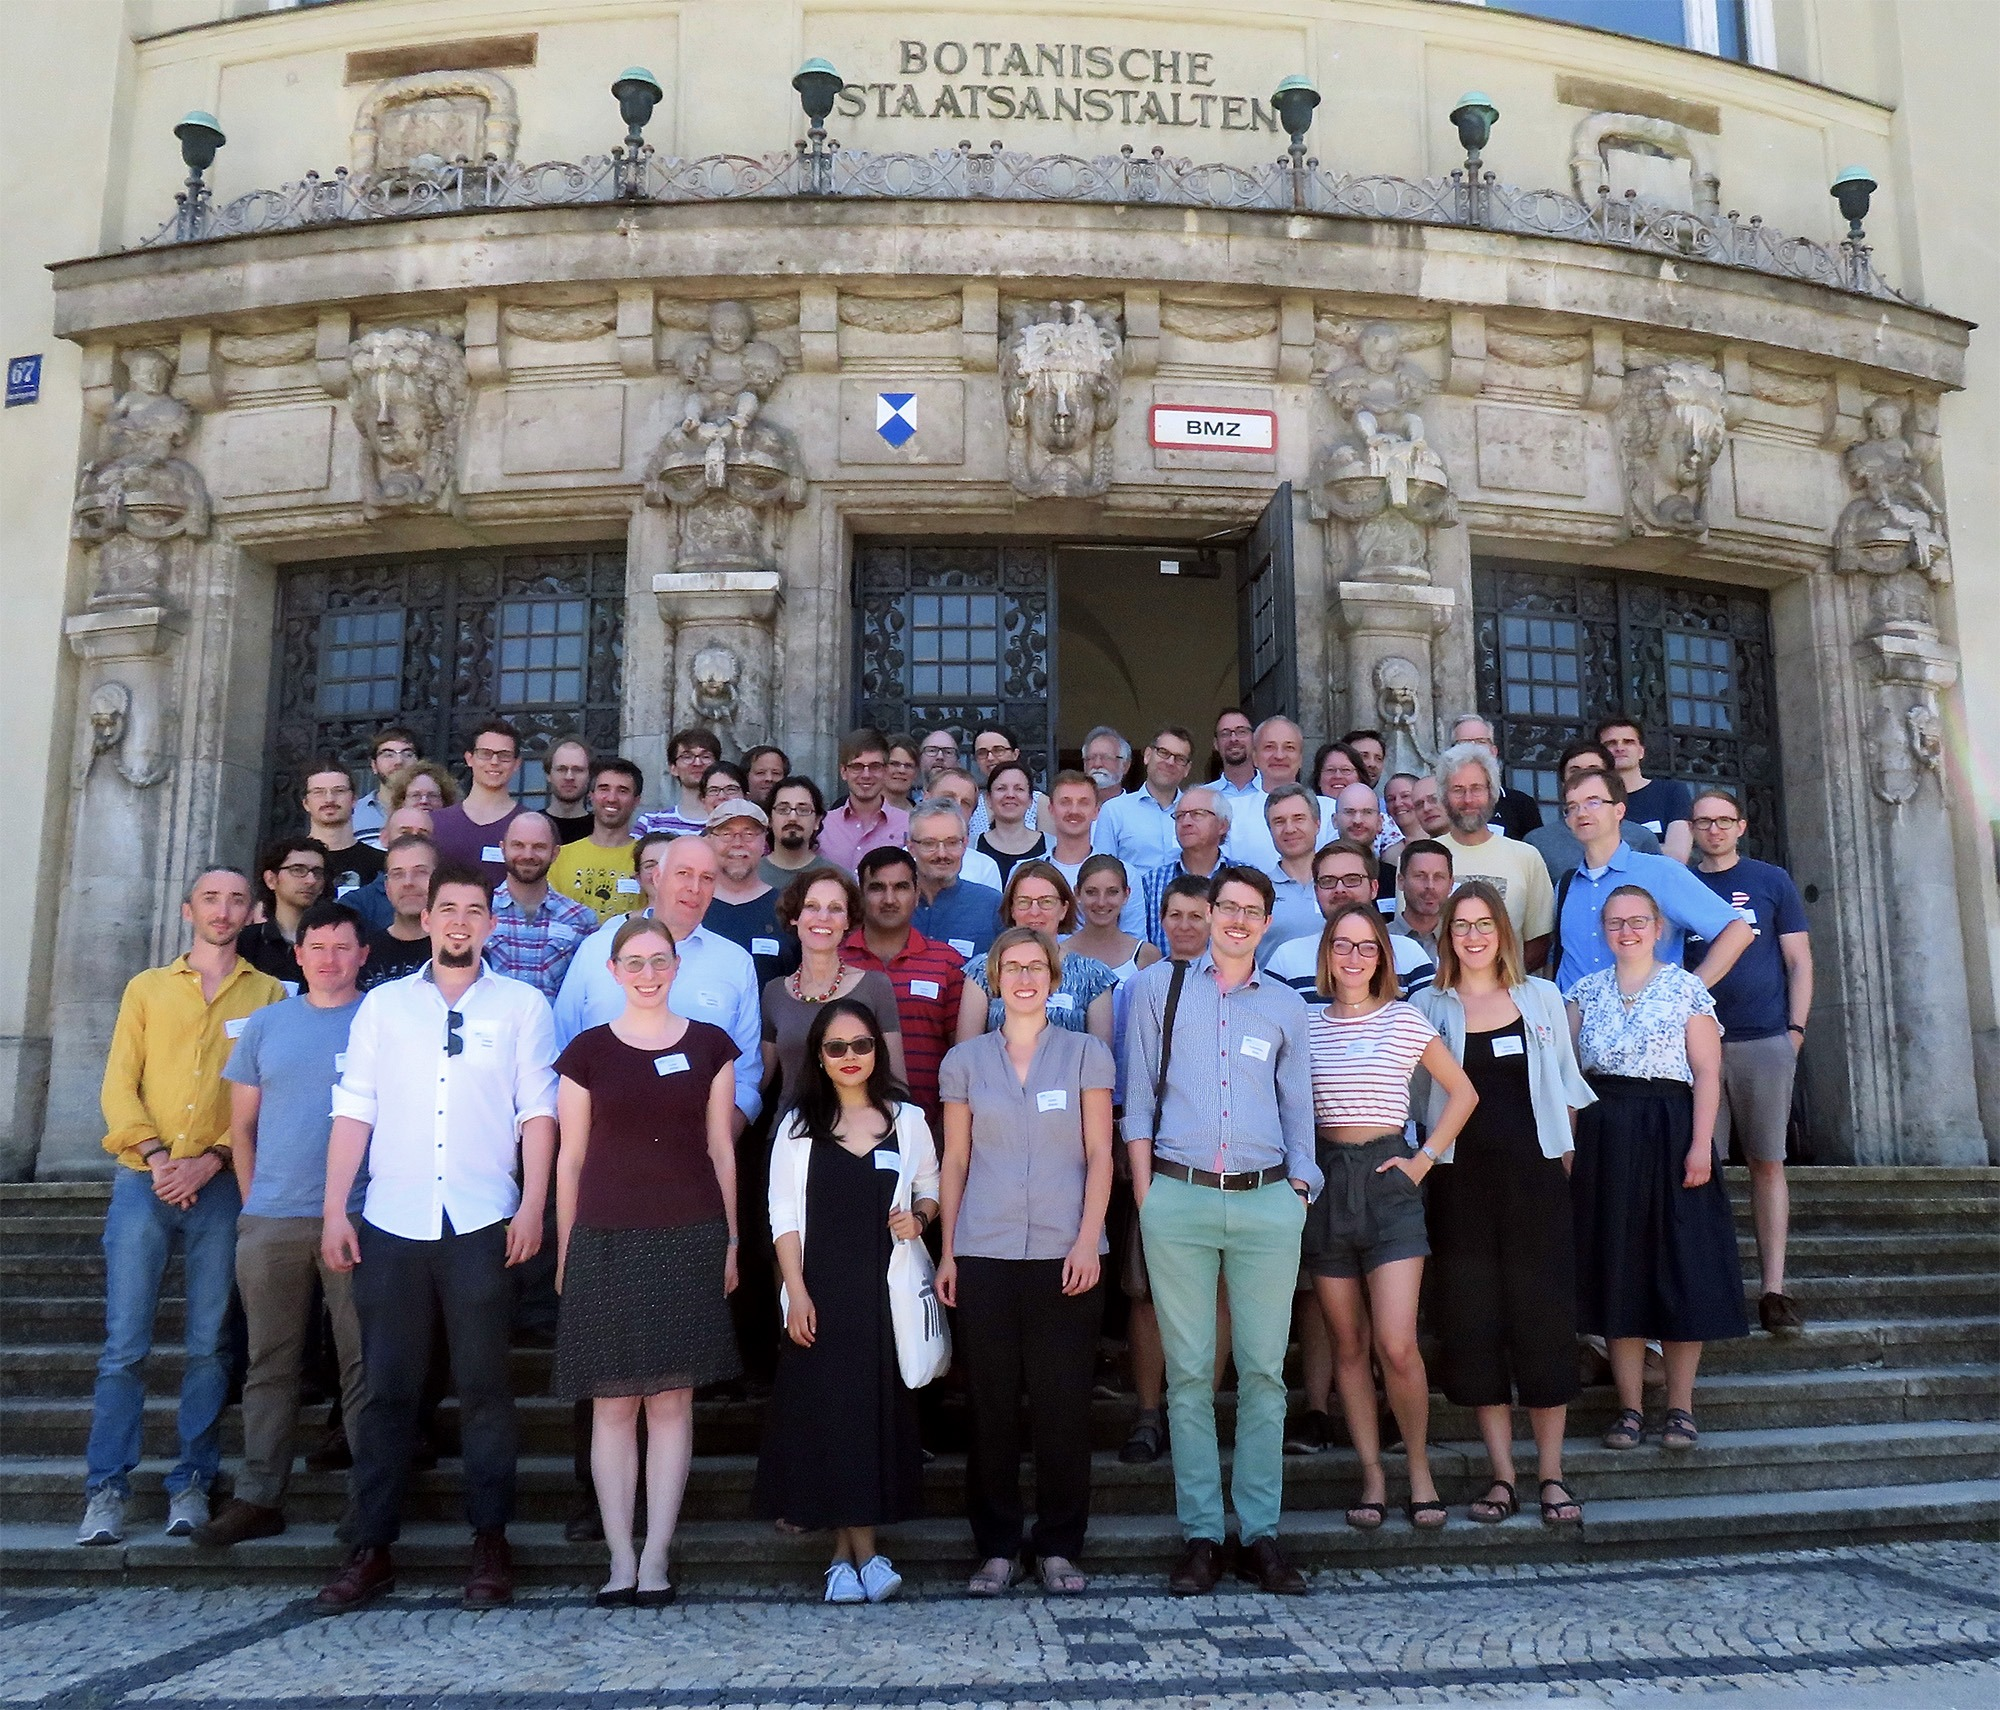 Attendees of our 3rd annual meeting on 29. June at the steps of the Munich Botanical Garden.